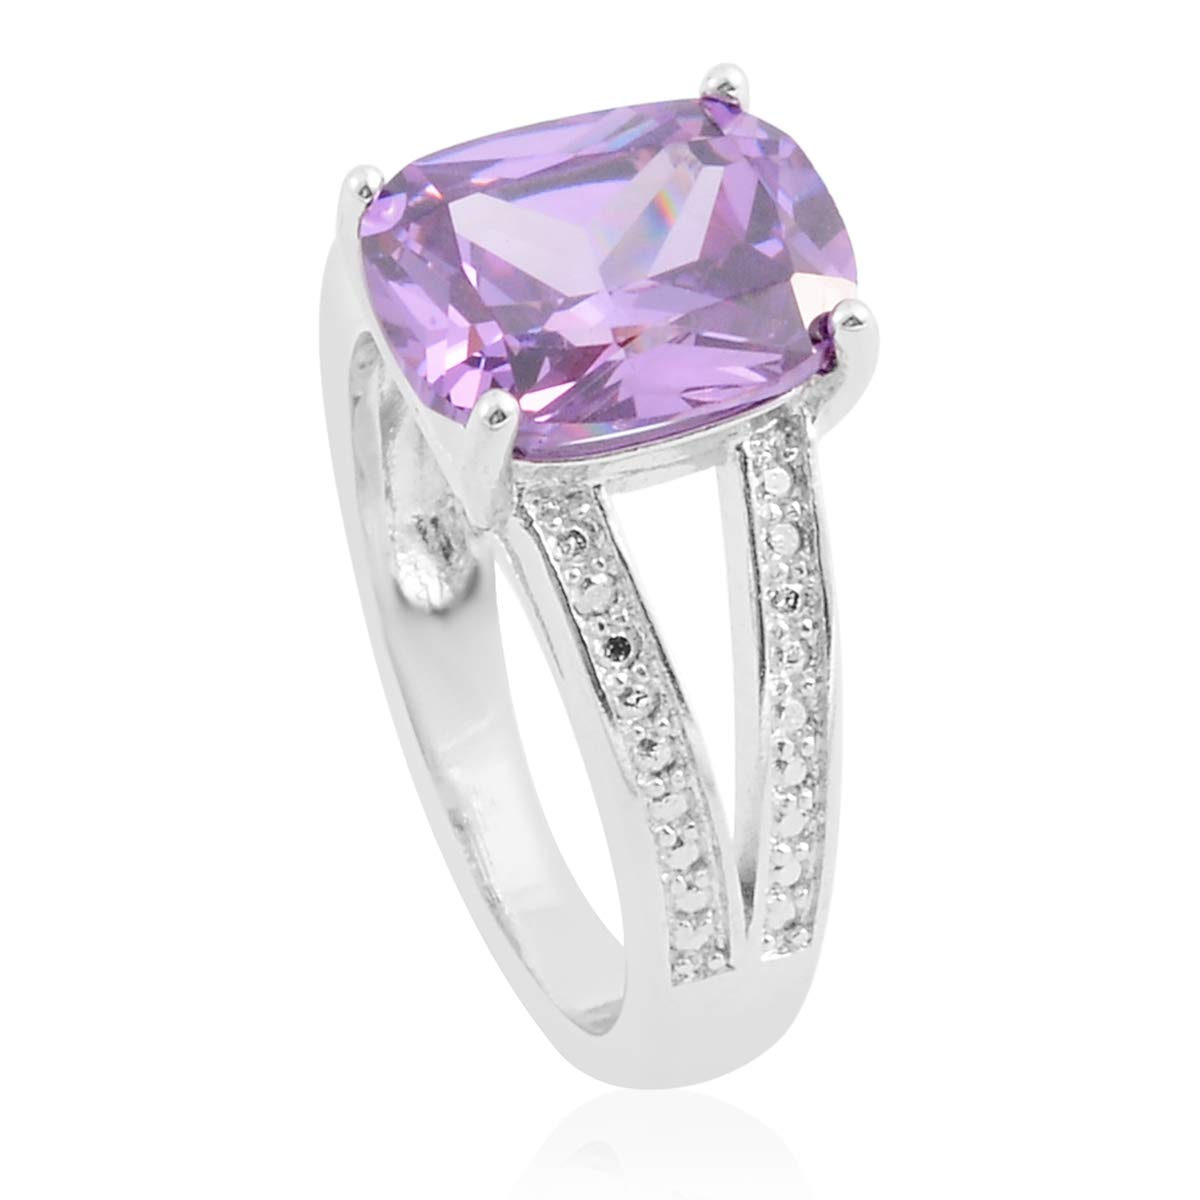 Shop LC Delivering Joy White Gold Plated Amethyst Cubic Zirconia Statement Ring for Women Cttw 1 Jewelry Gift